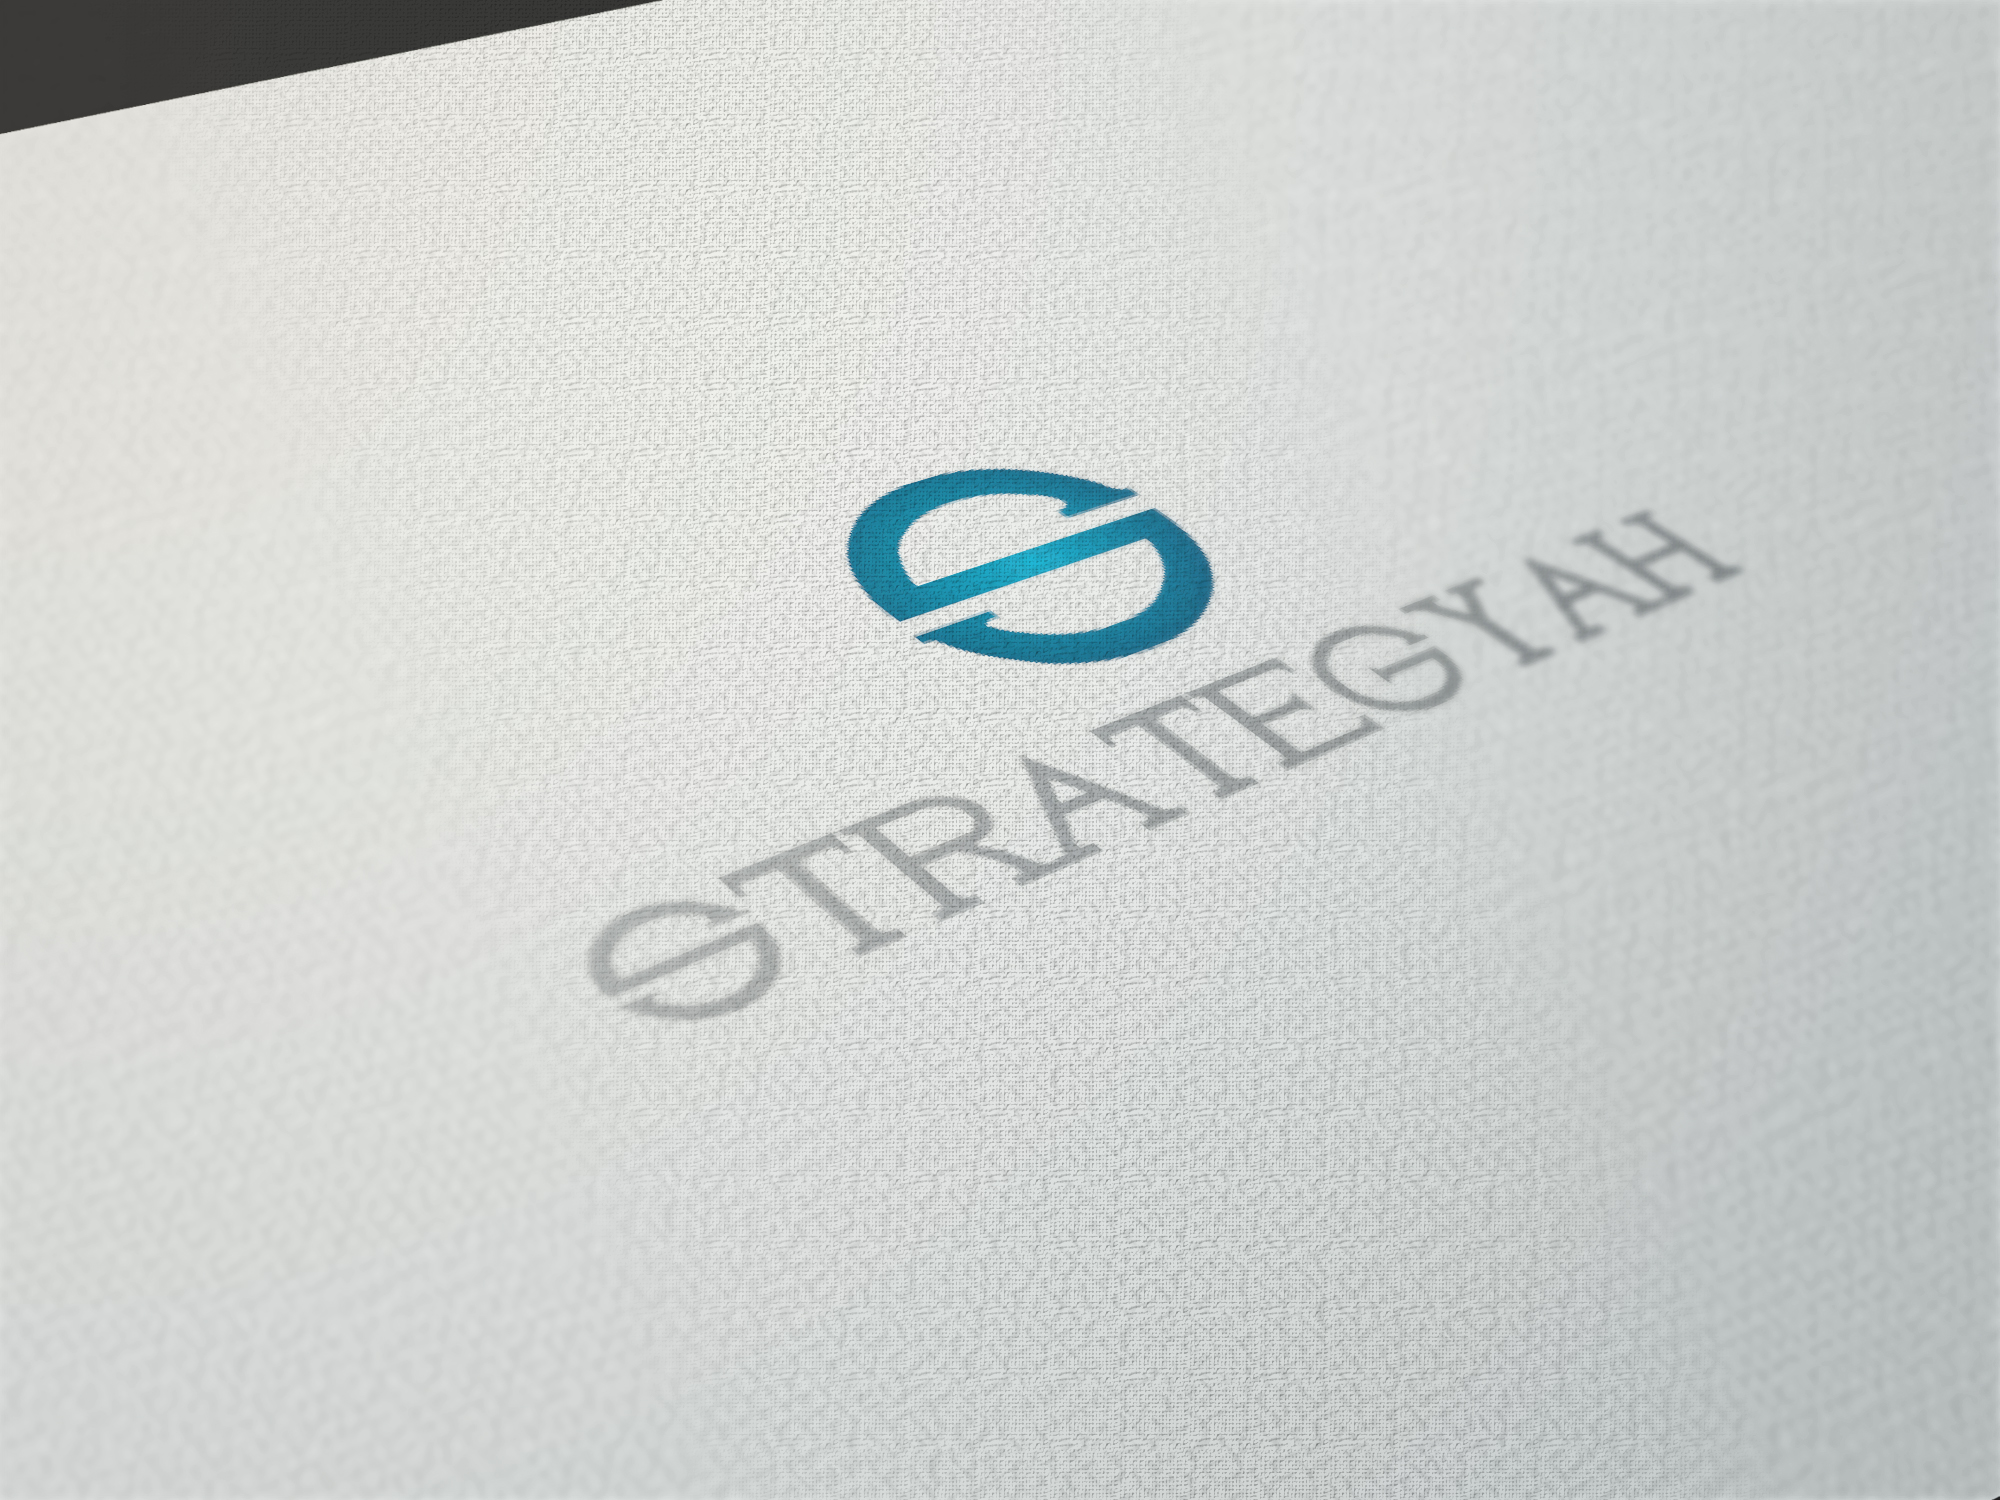 Logo Design by Petar Kovachev - Entry No. 43 in the Logo Design Contest Creative Logo Design for Strategyah.